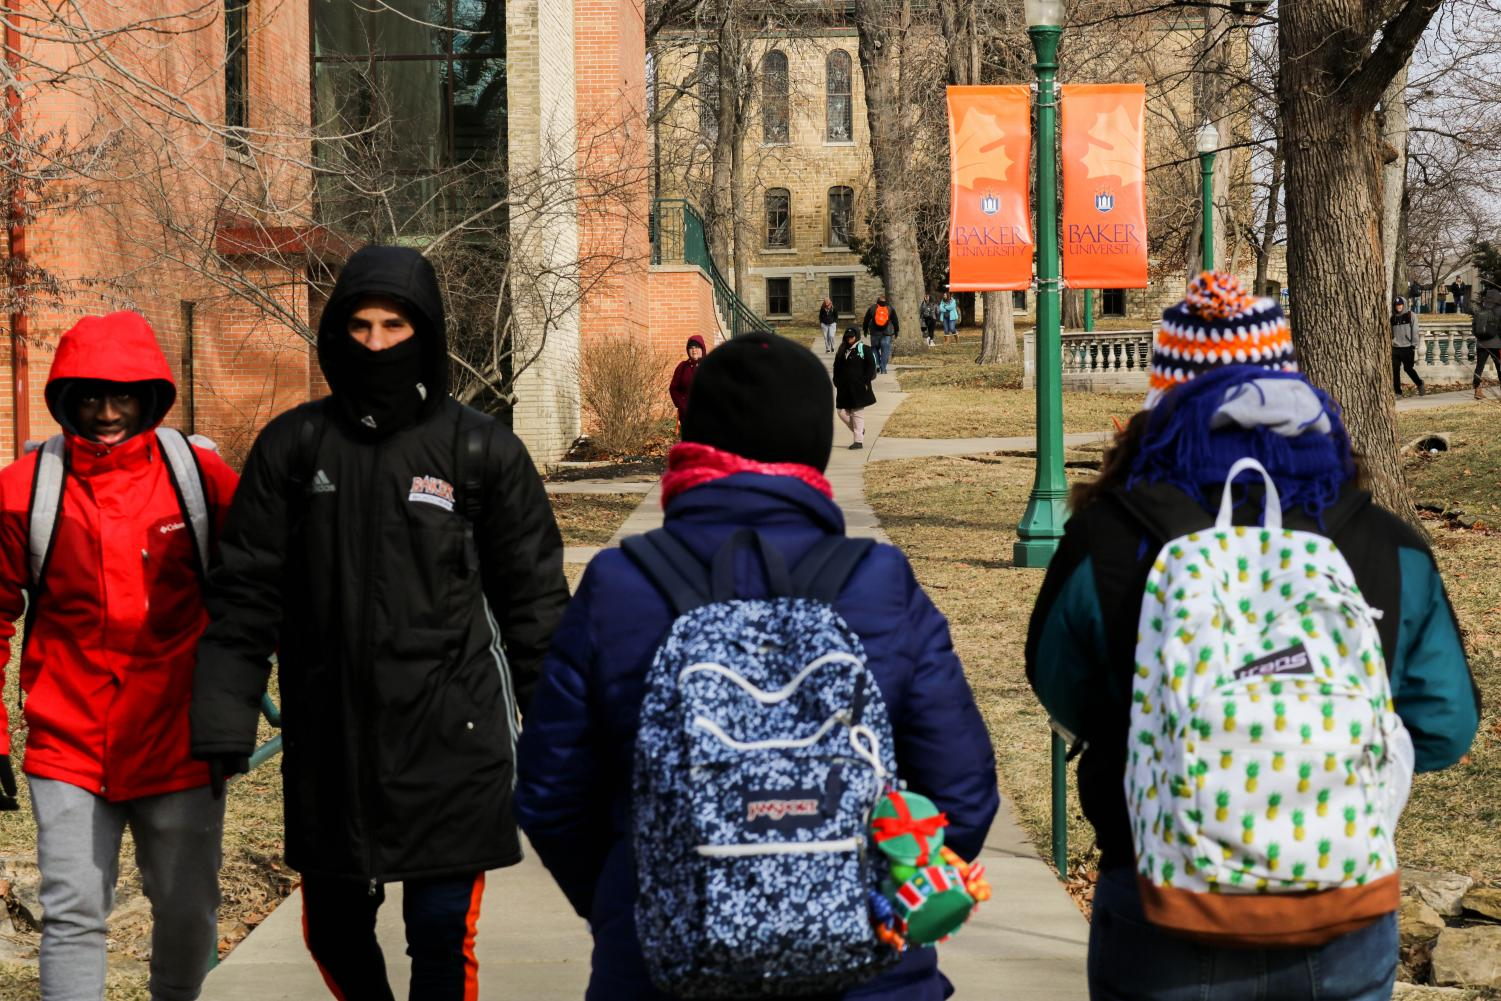 Students brought out every coat, hat and pair of gloves they could find in order to keep warm throughout the polar vortex that hit the Midwest.